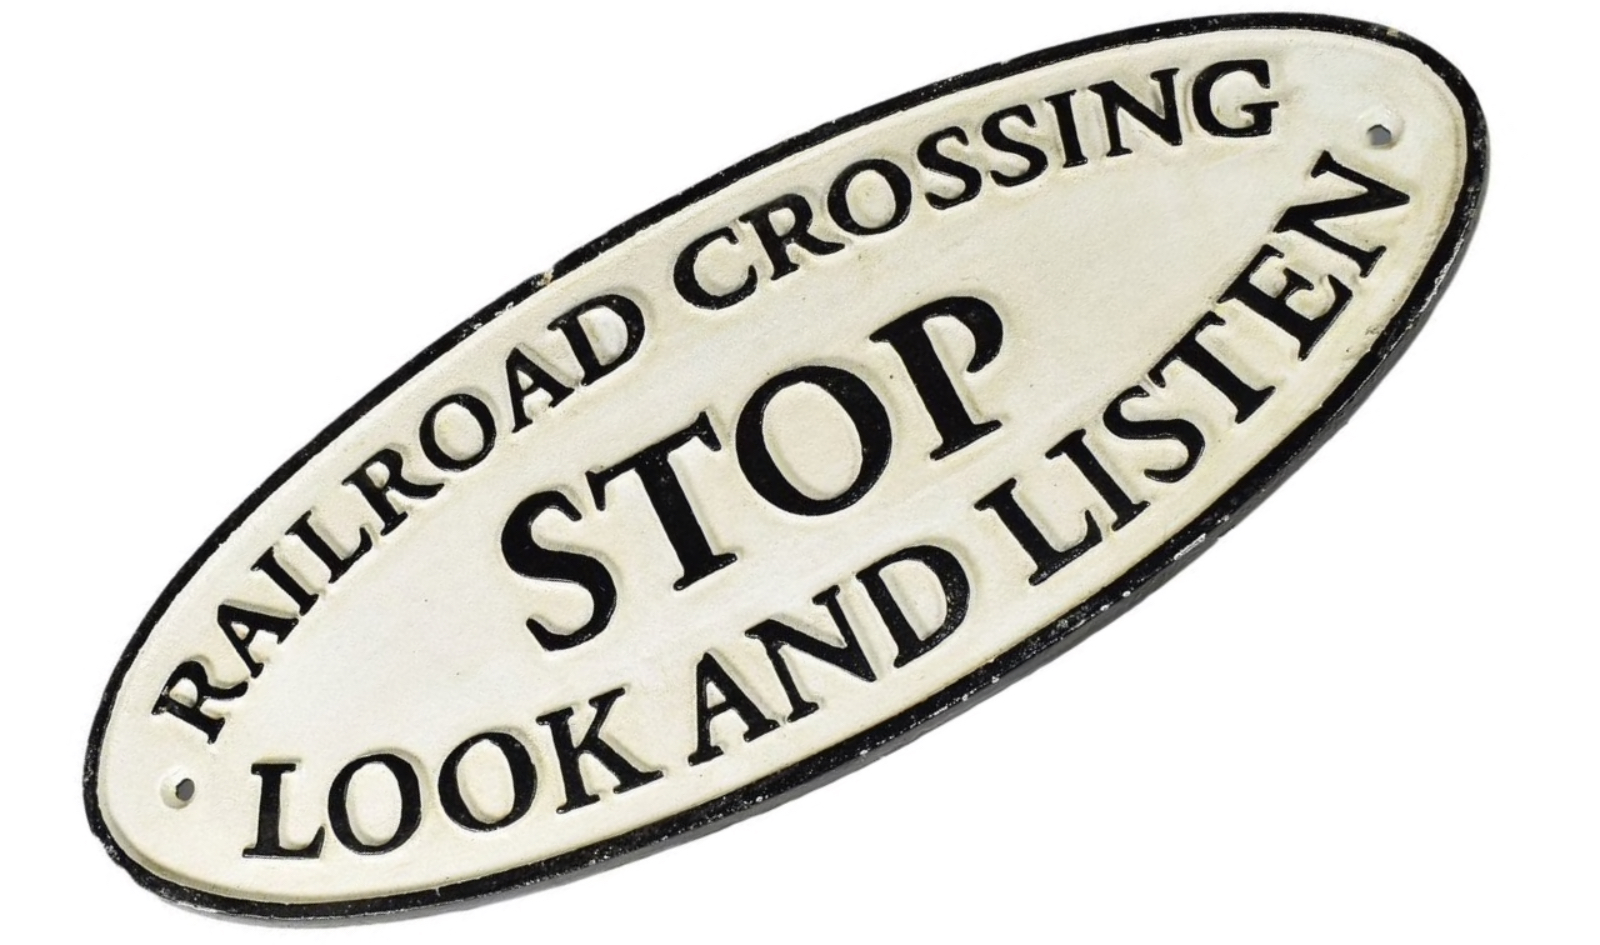 Rail Road Crossing Stop Look And Listen